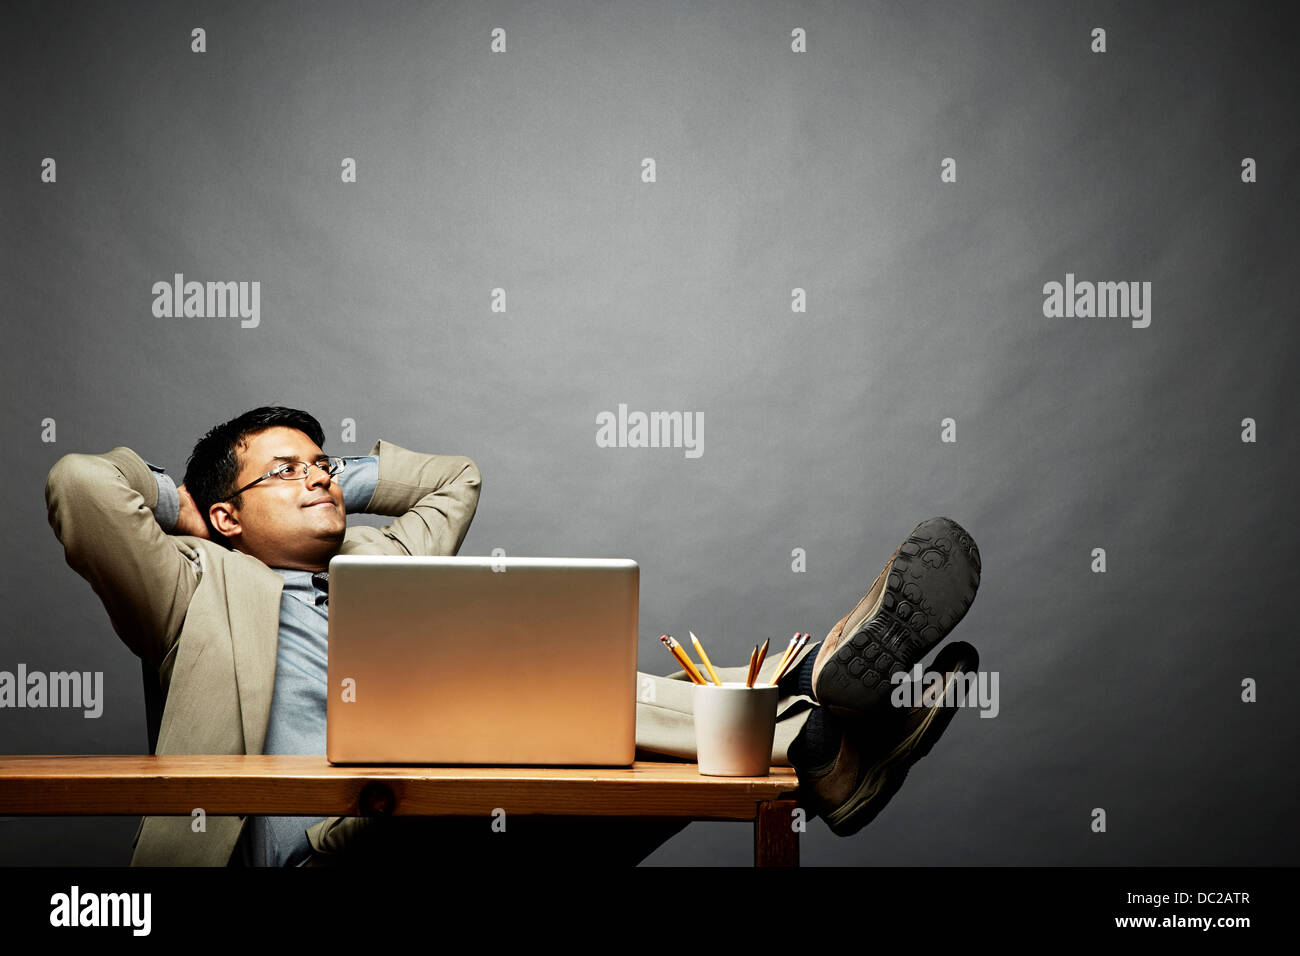 Man relaxing with feet up on table Photo Stock